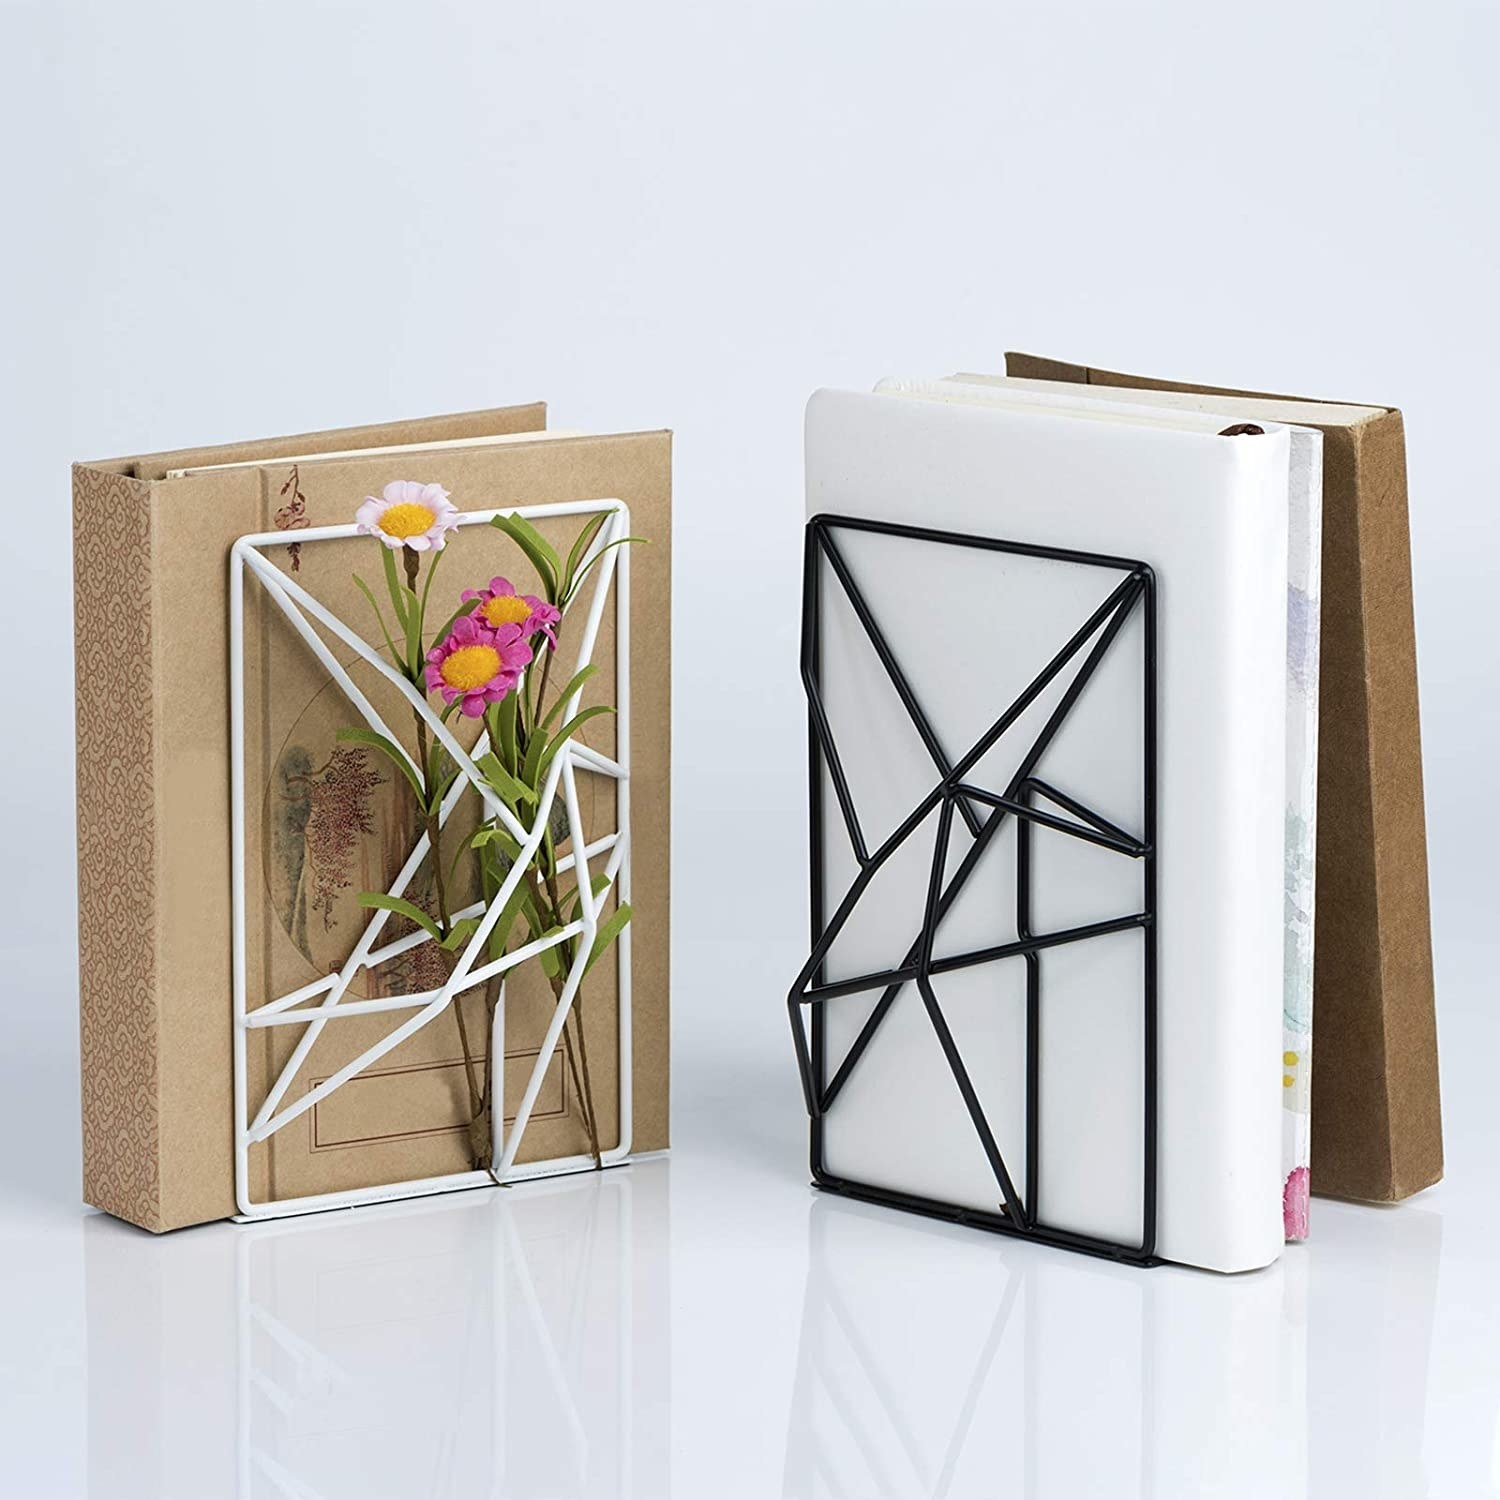 Two wiry metal bookends with books placed beside them